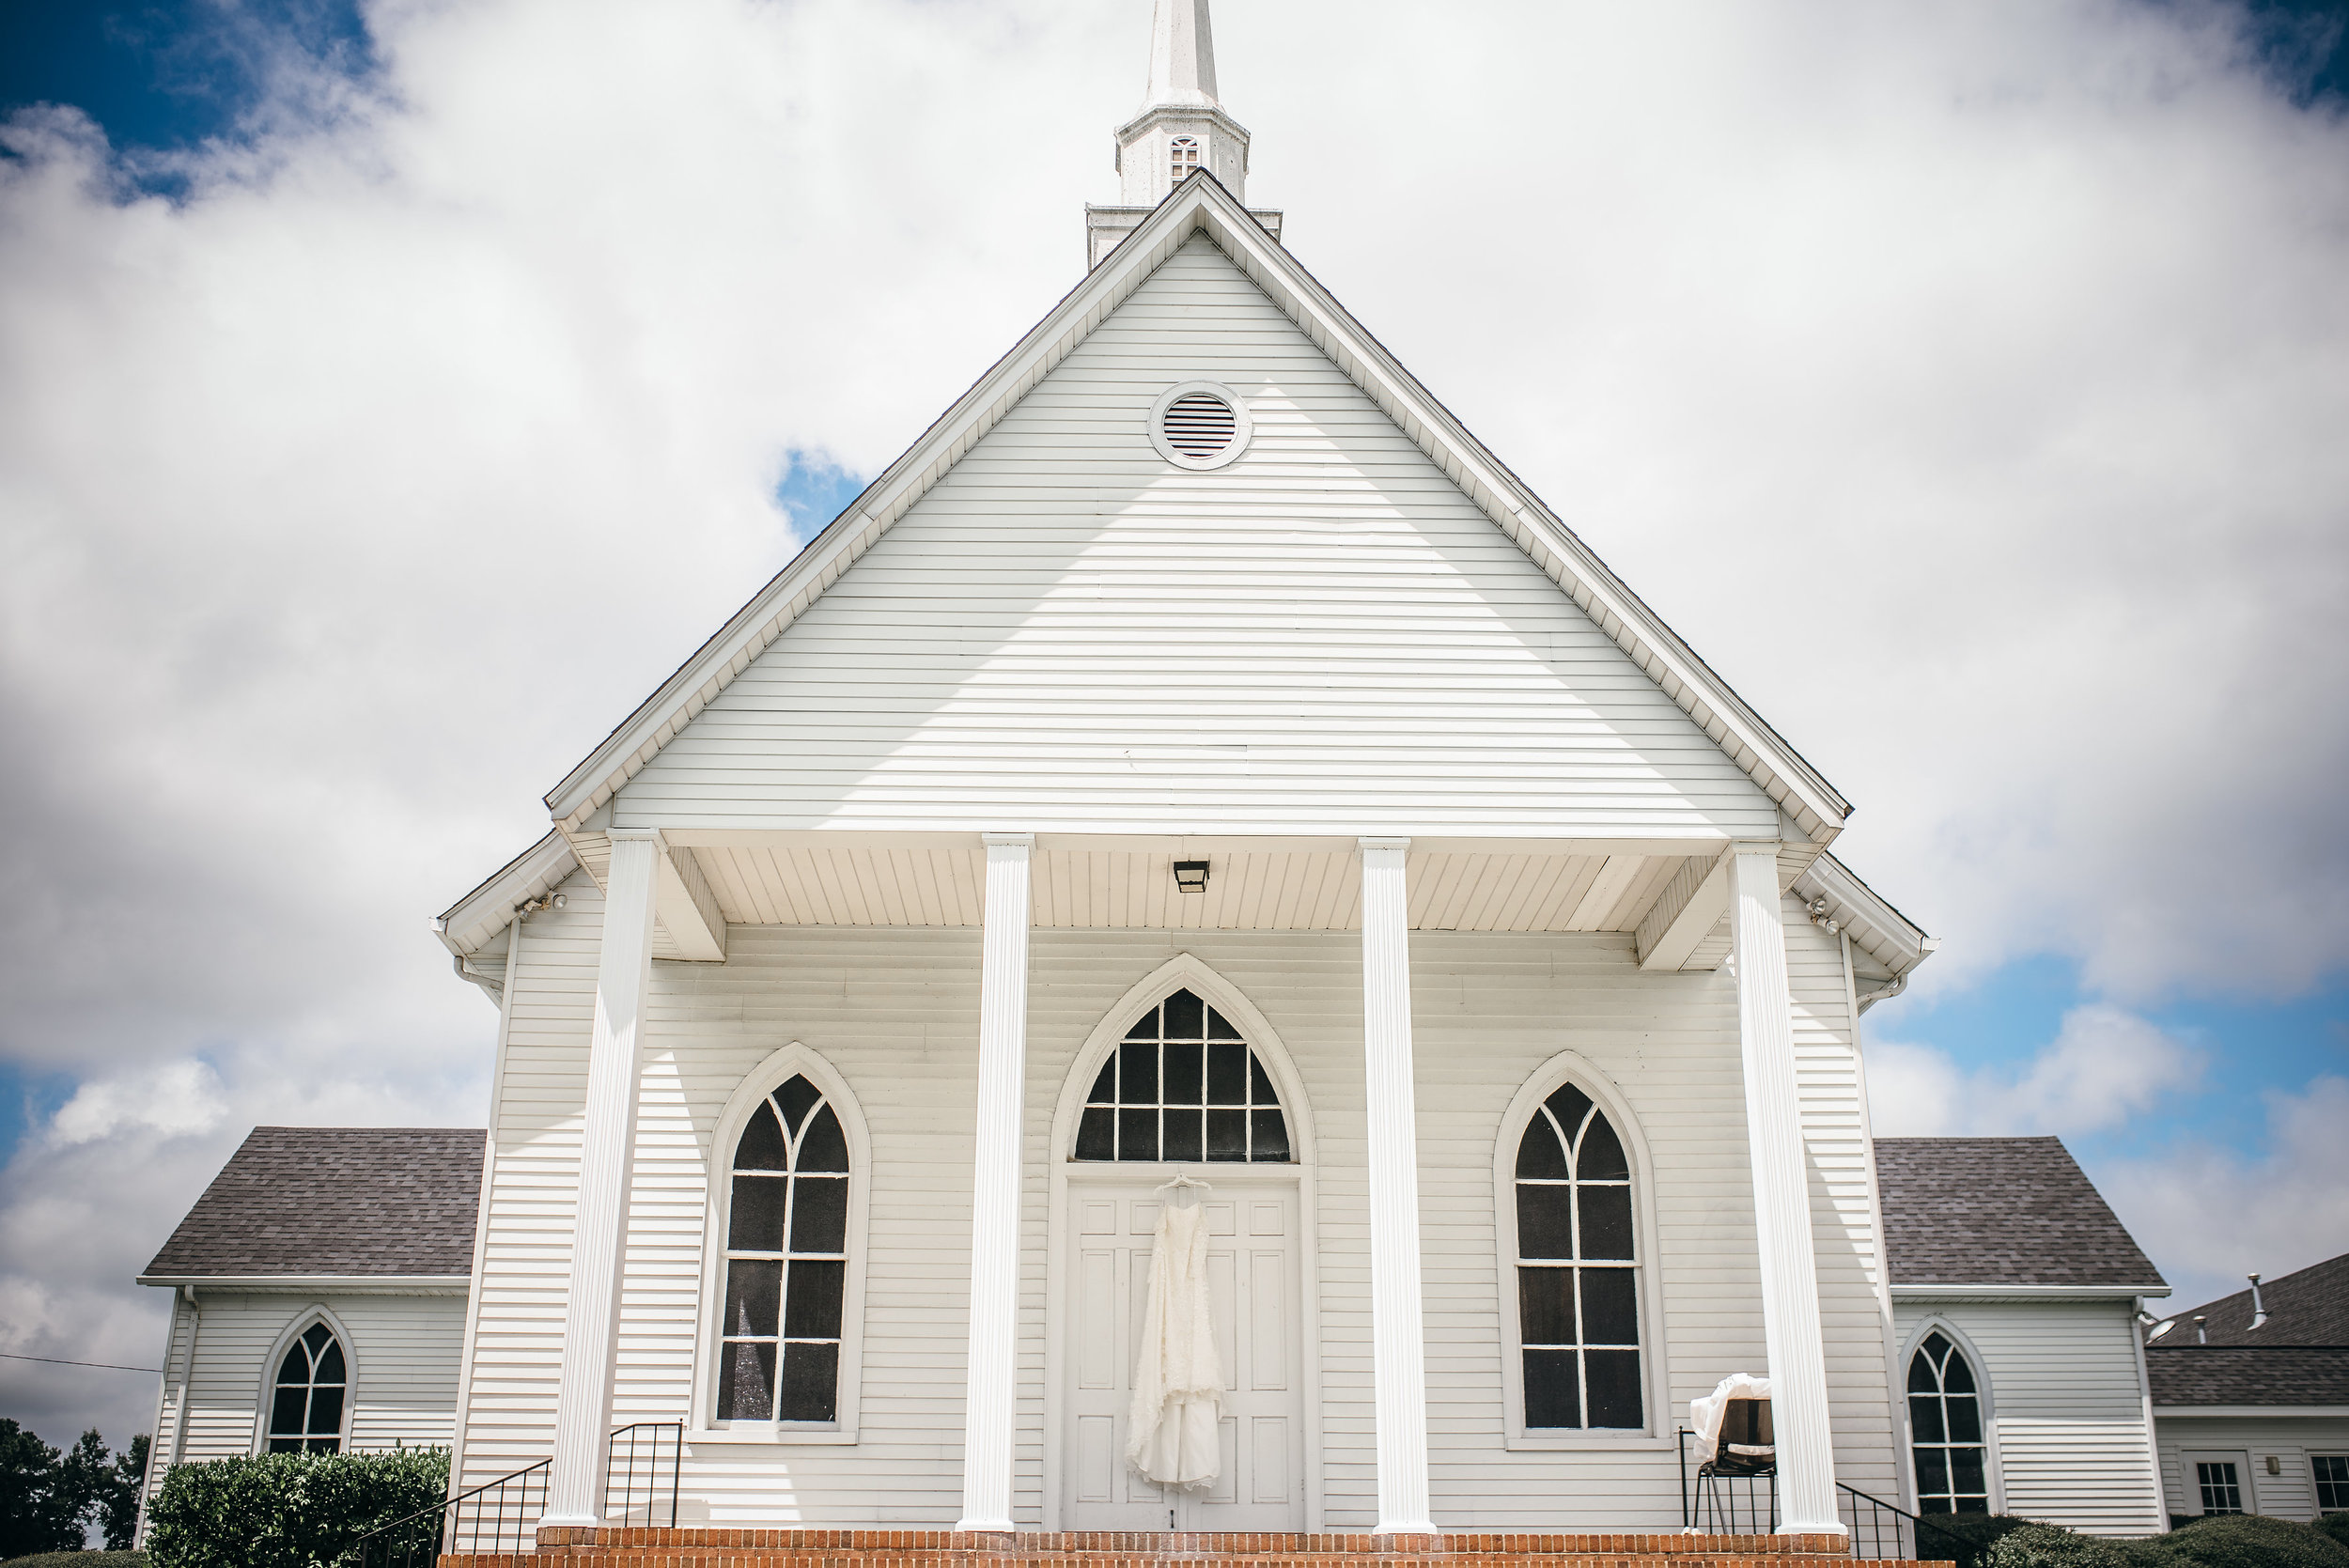 louisburg wedding - louisburg wedding photographer - north carolina wedding photographer